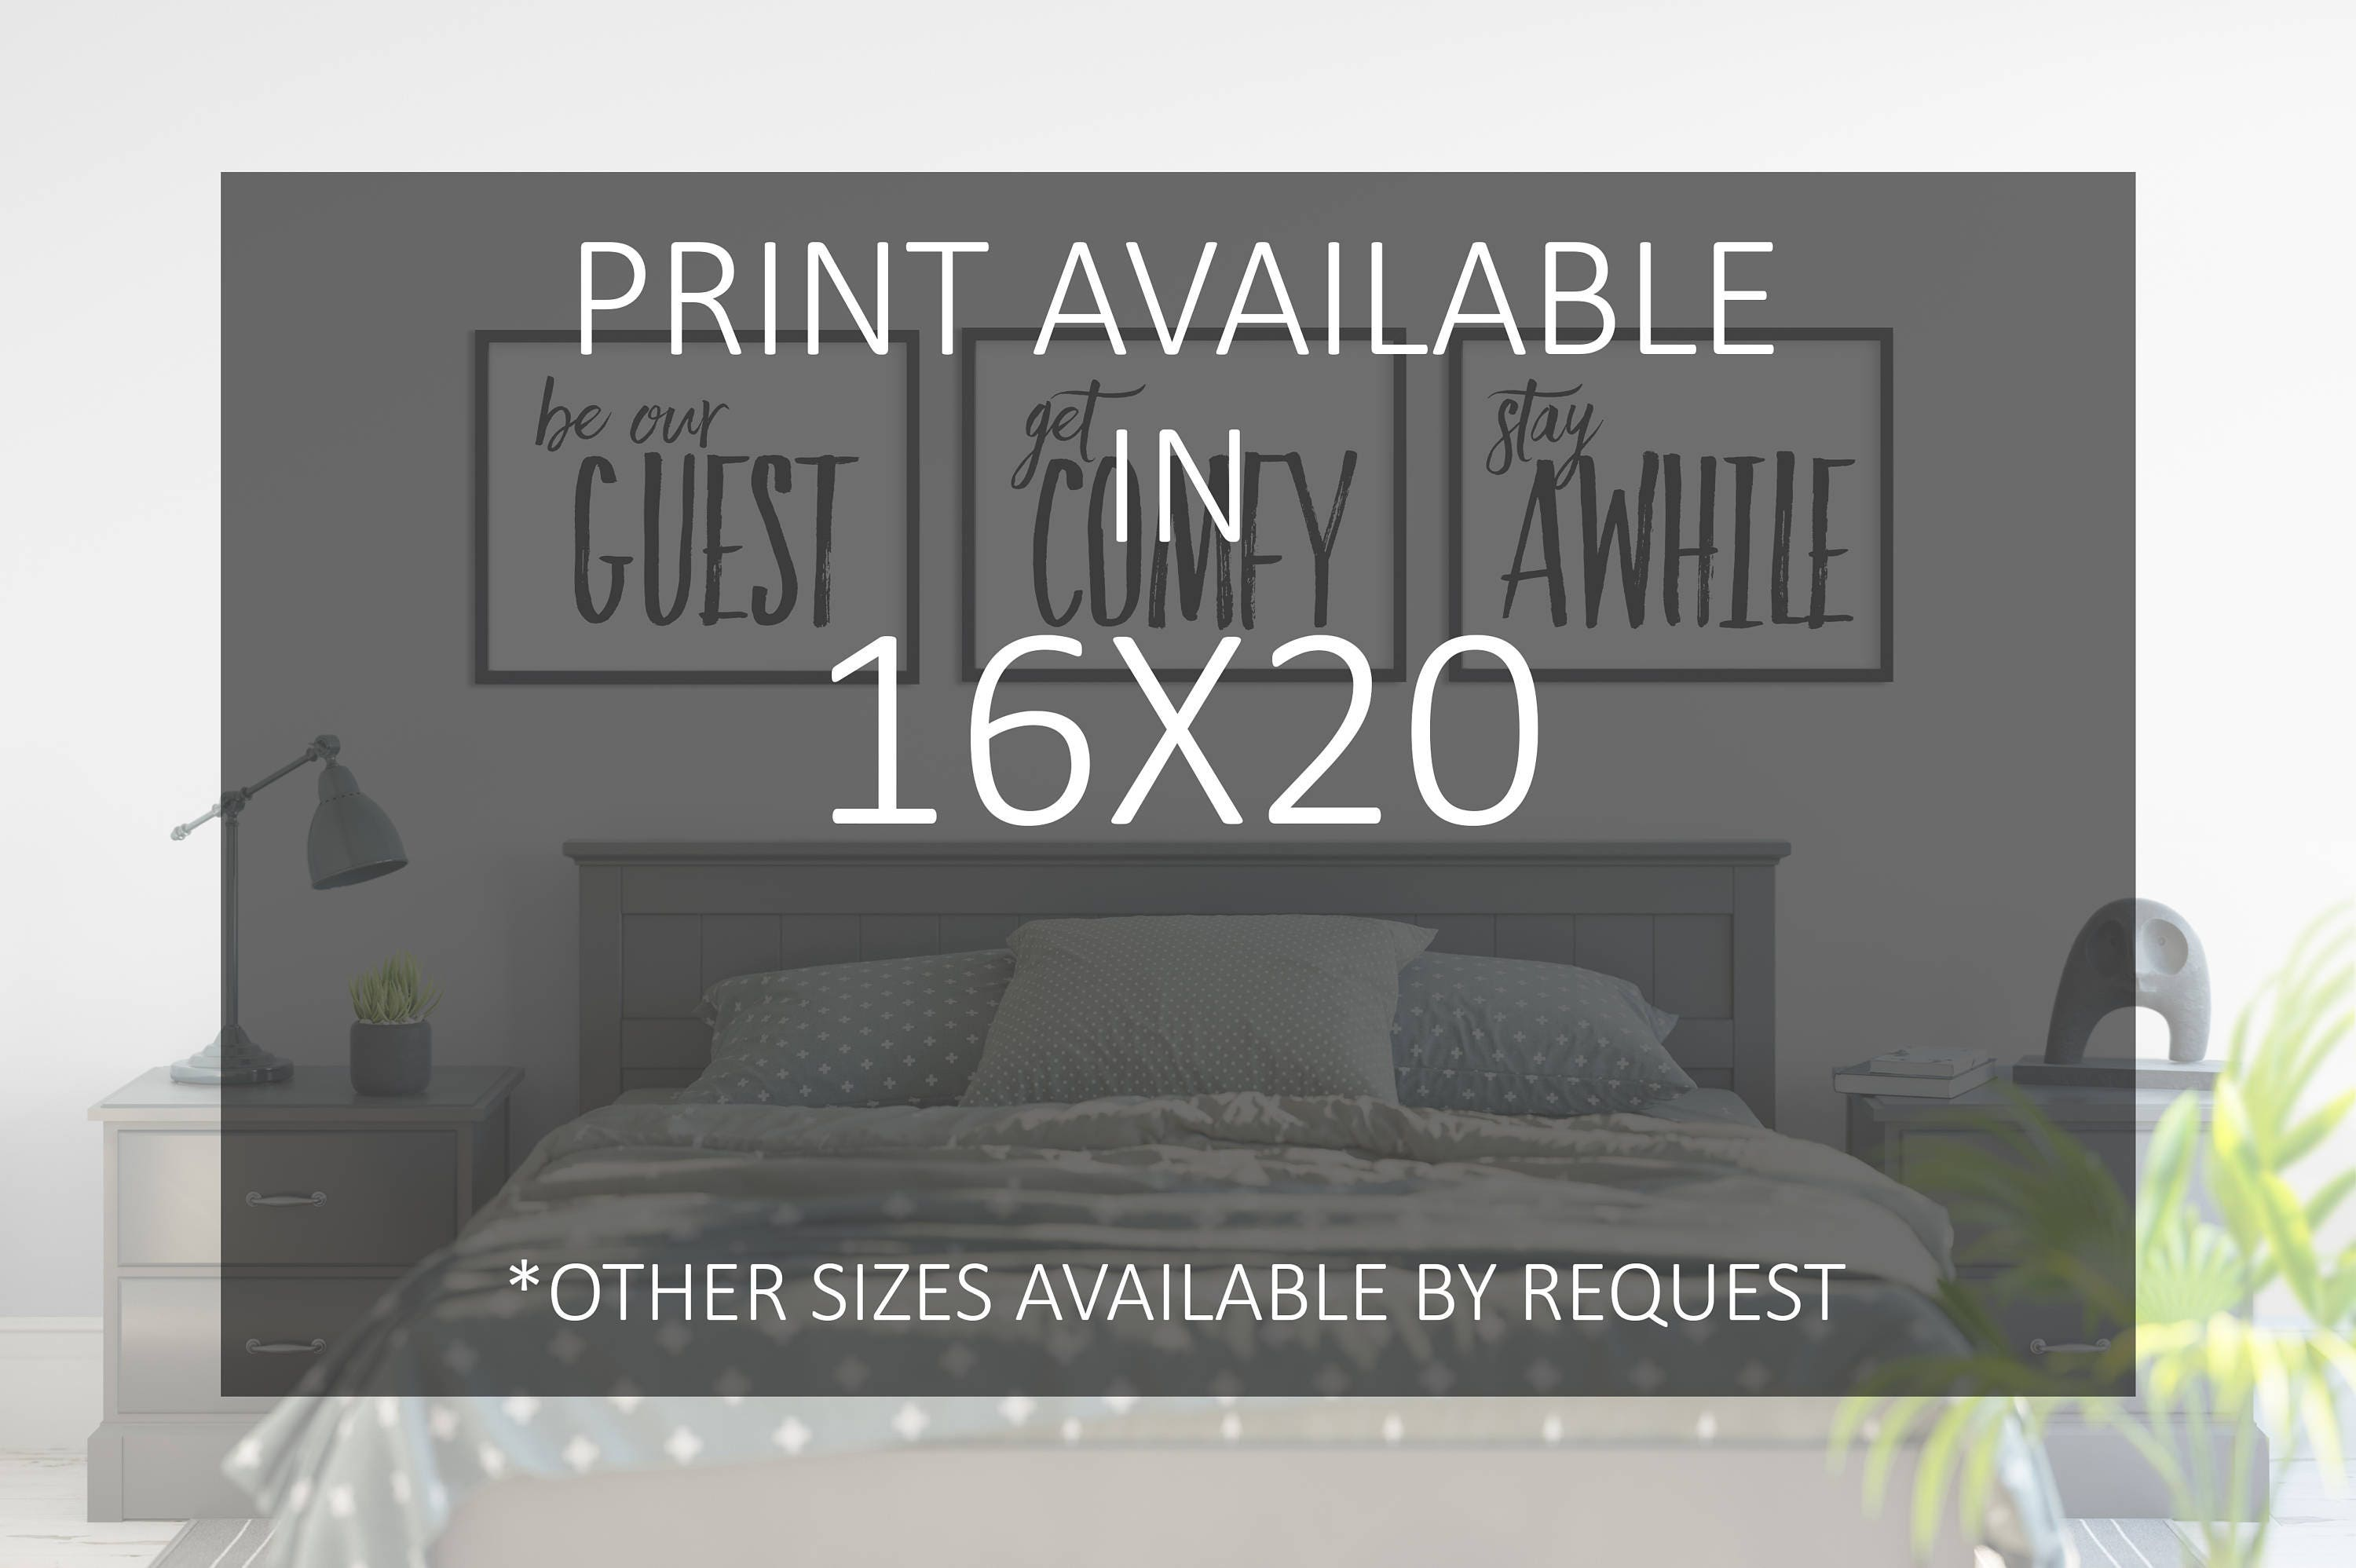 graphic regarding Be Our Guest Printable referred to as Household Decor 16x20 - Wall Decor - Be Our Visitor - Consider At ease